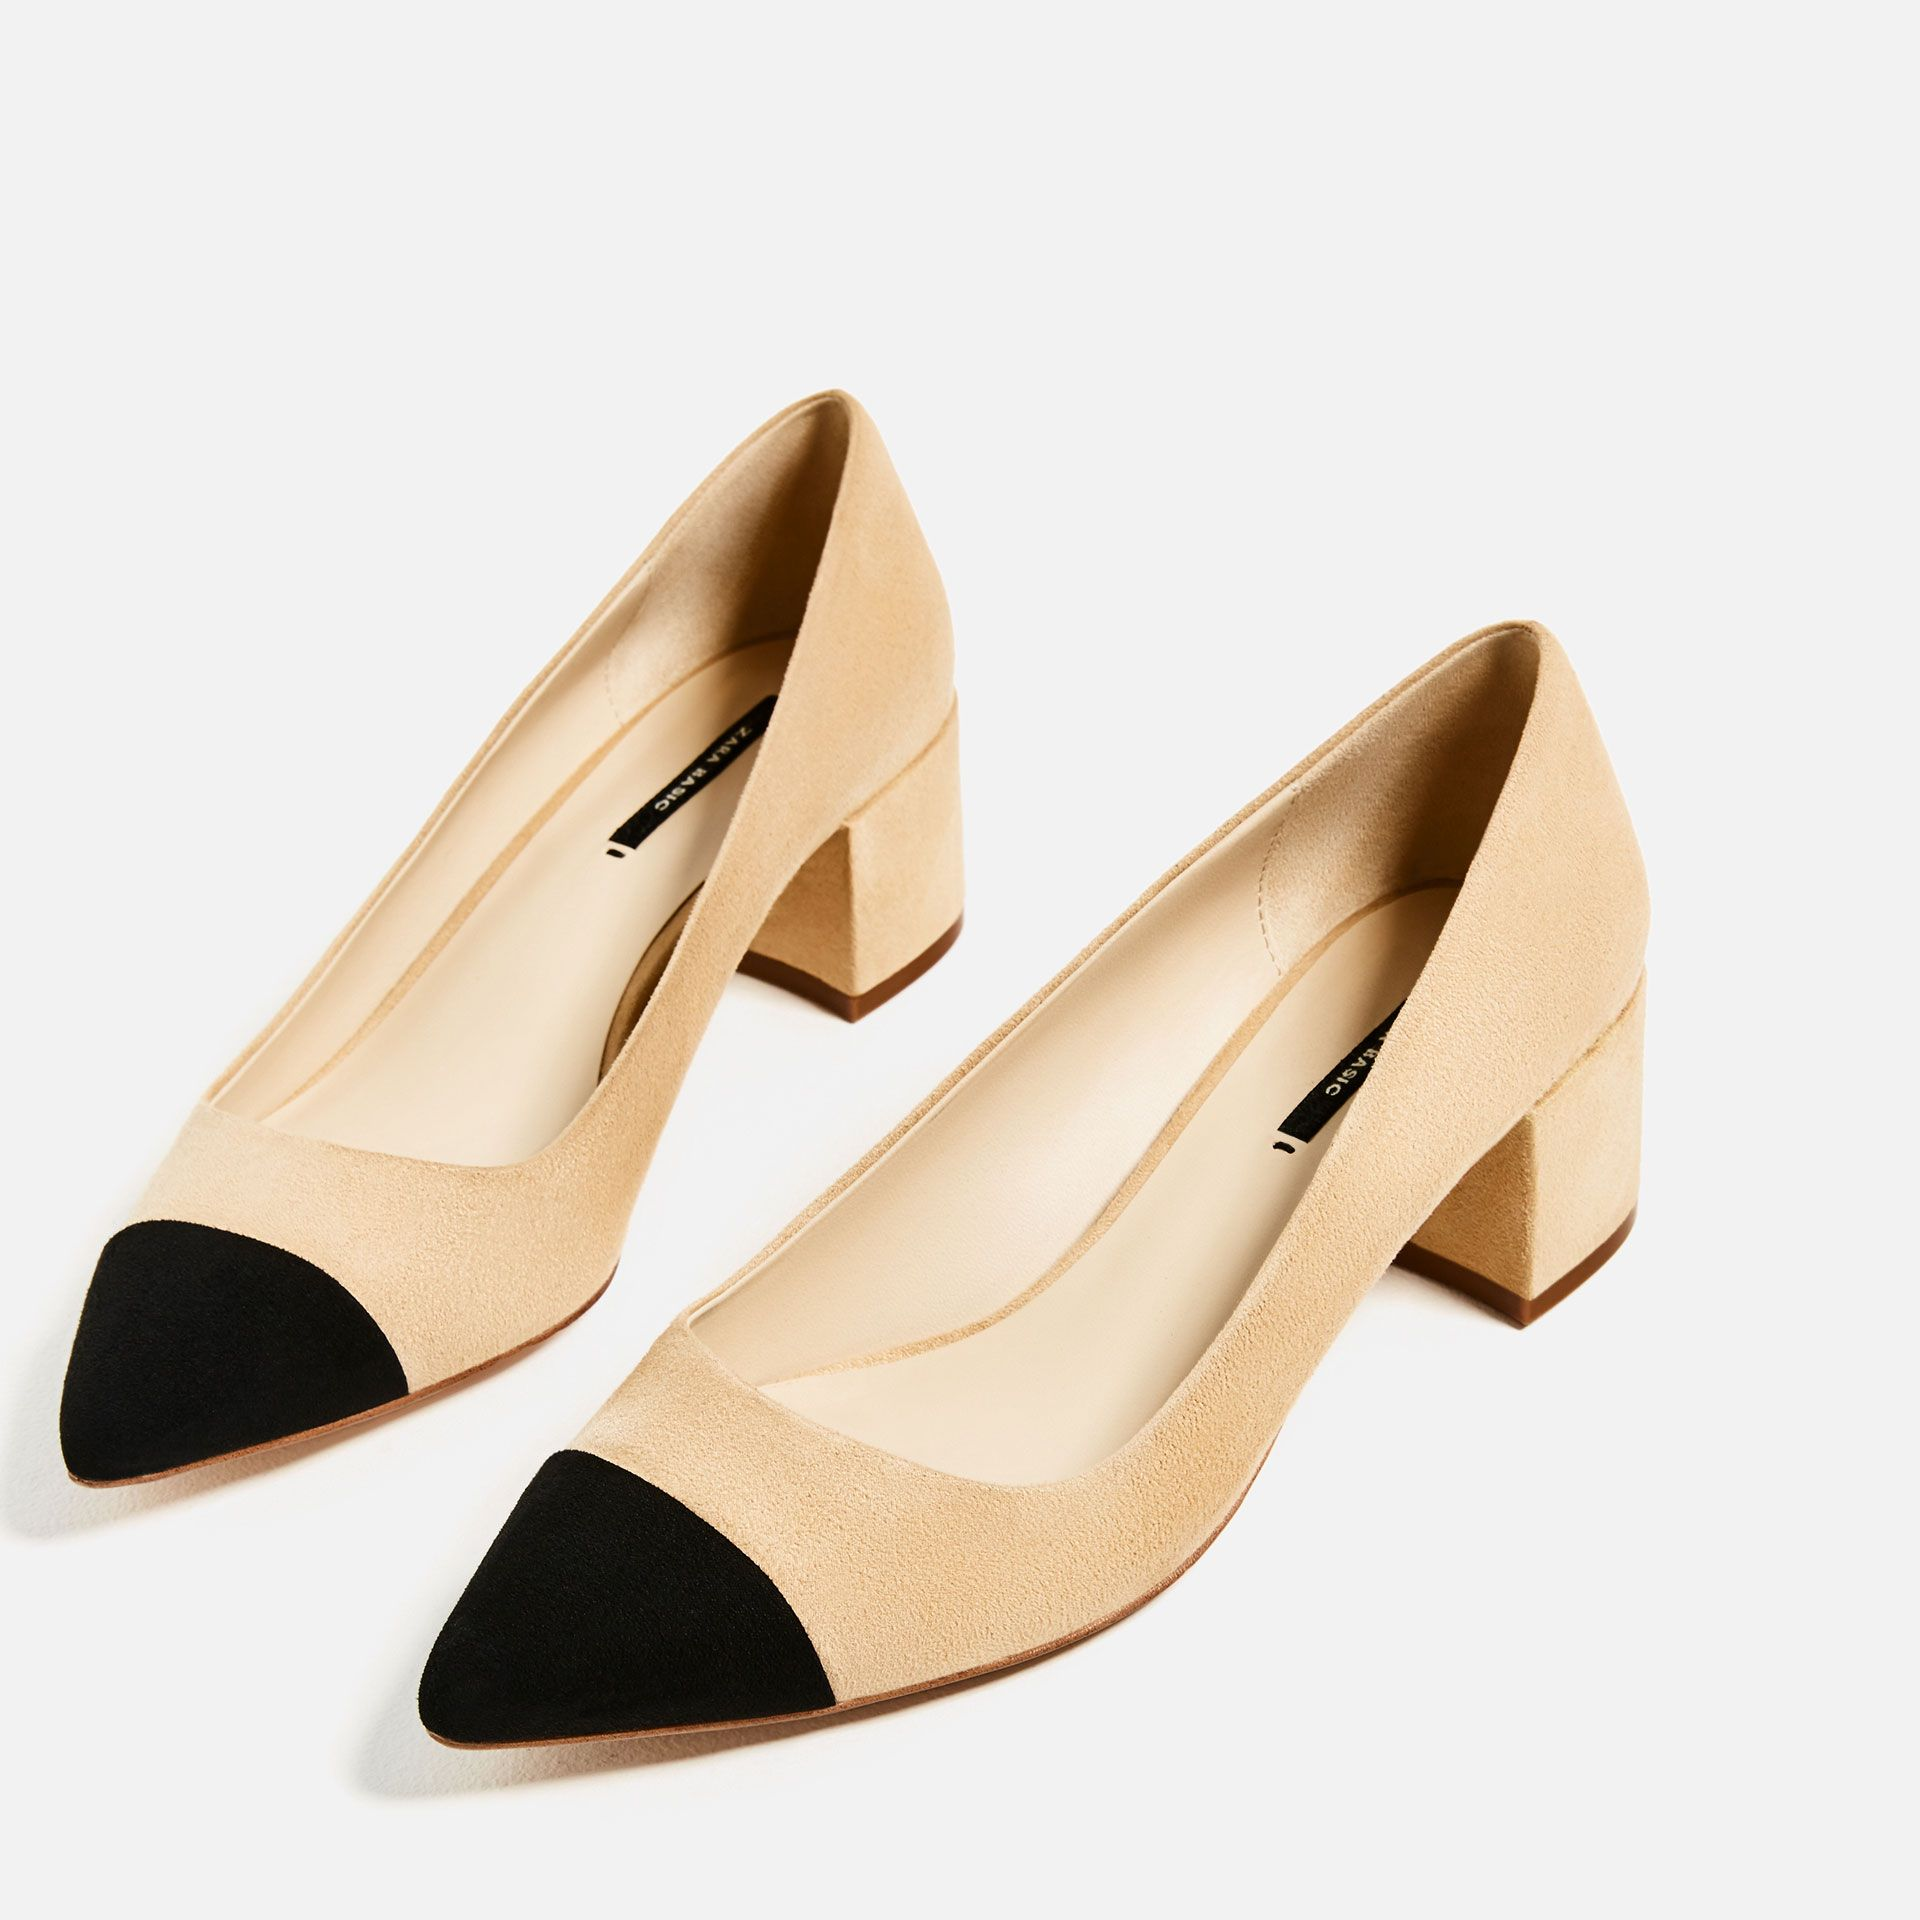 02efe1082154 Image 3 of MID-HEEL SHOES WITH CONTRASTING TOE CAP from Zara